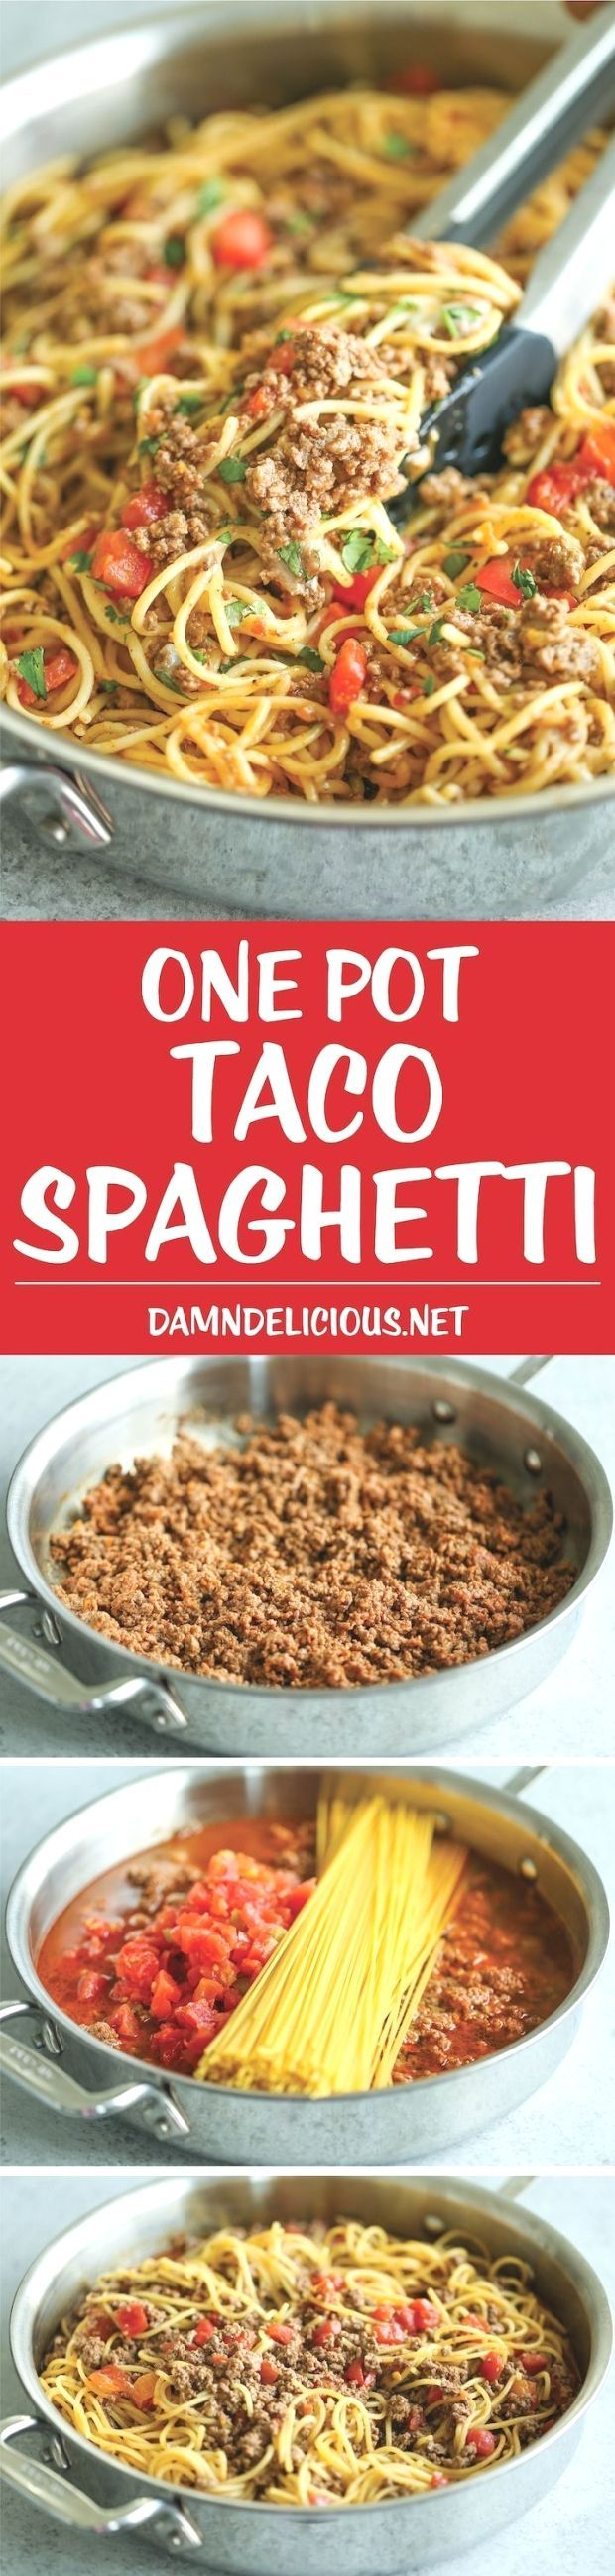 One Pot Taco Spaghetti  All your favorite flavors of tacos in spaghetti form  made in ONE PAN